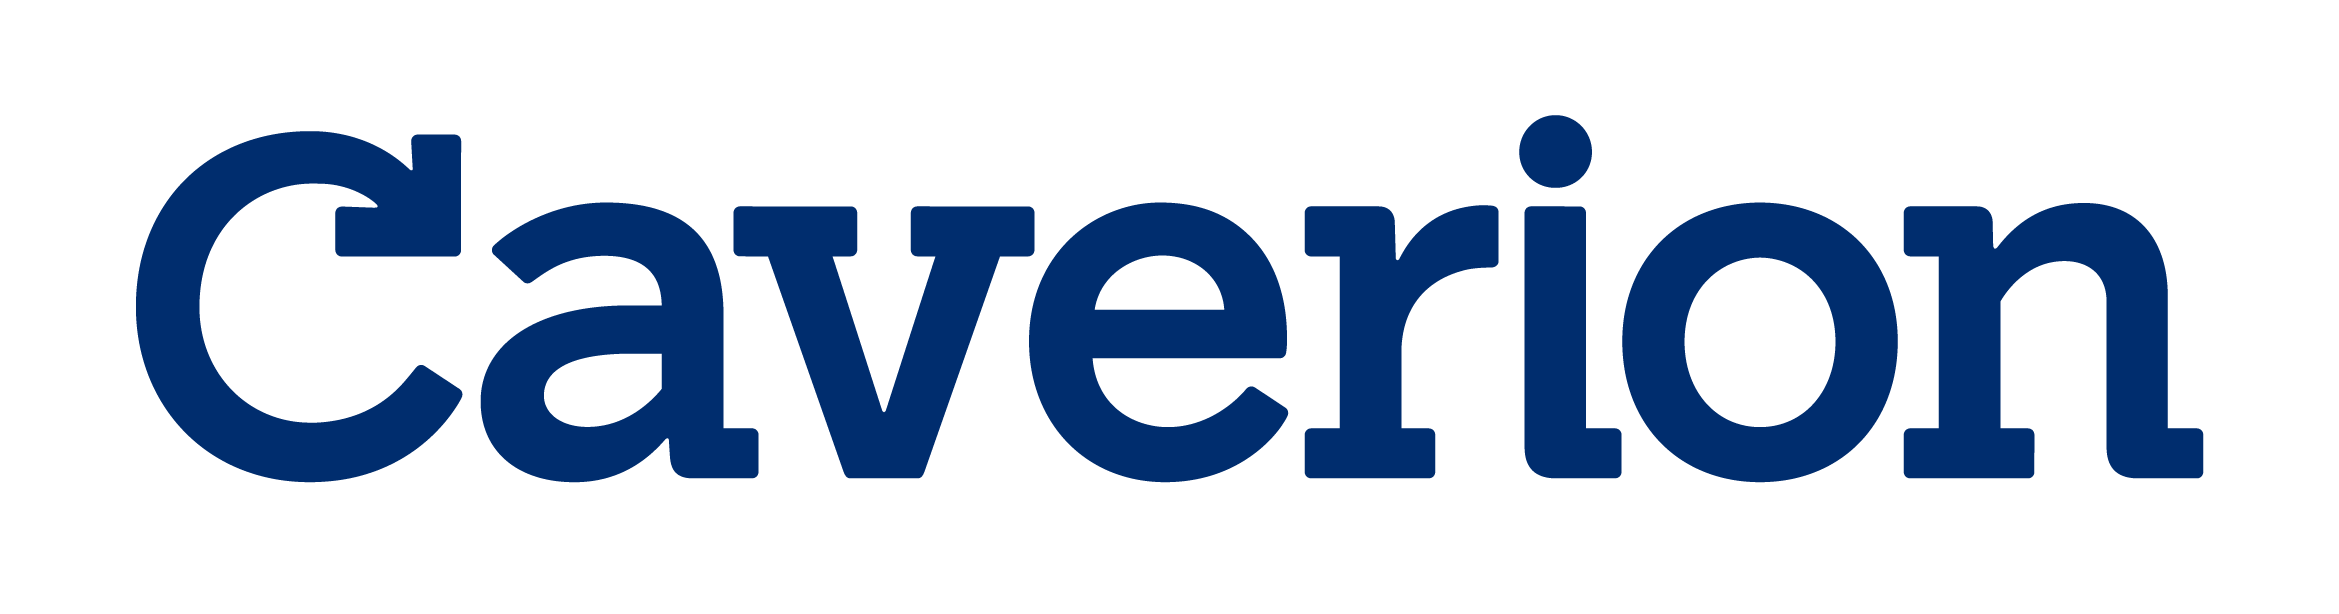 Caverion AS avd Harstad logo